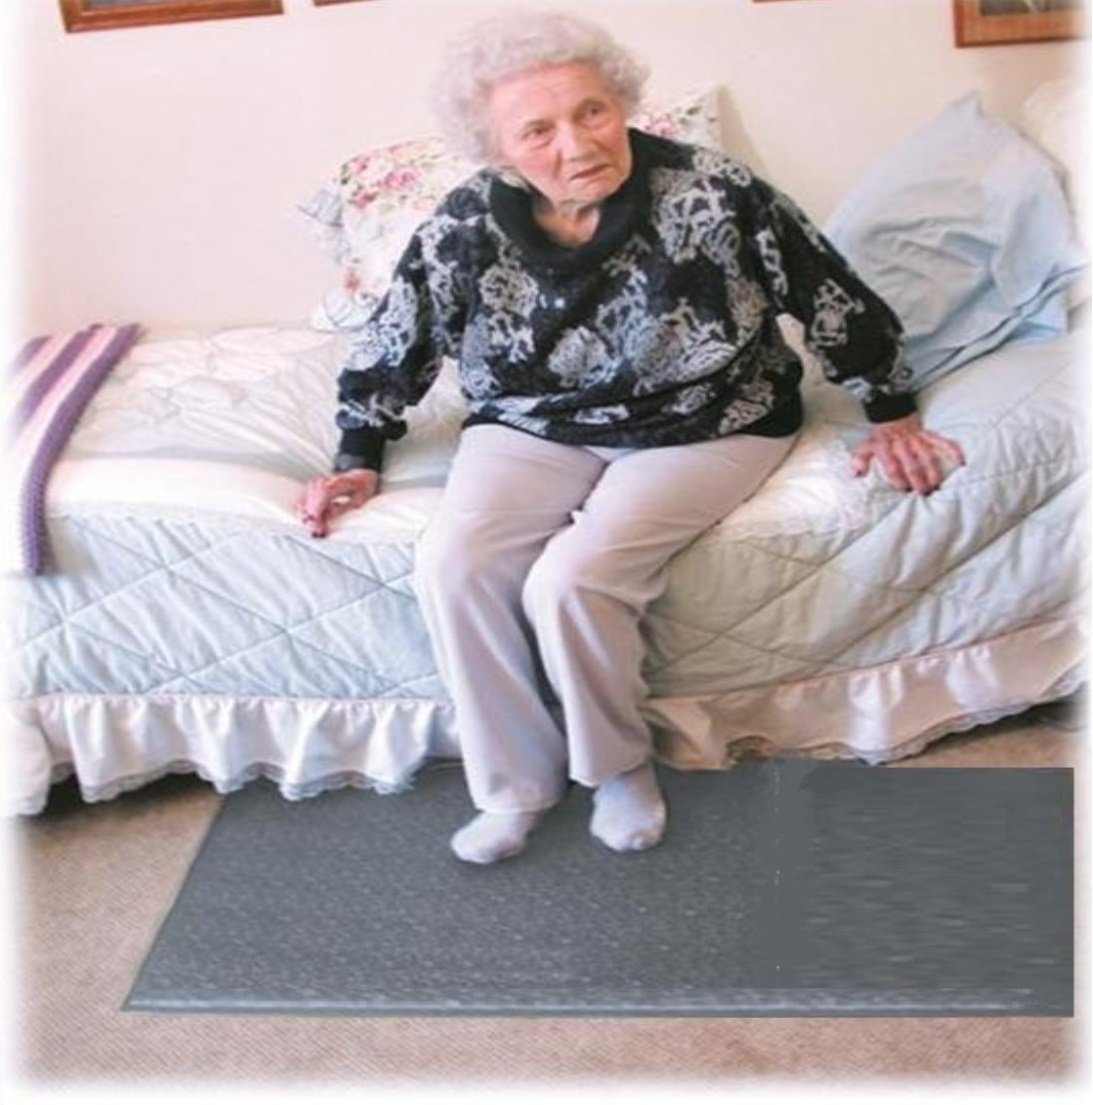 Floor Mat Alarm System for Preventing Falls & Wandering - Plus Kerr Absorbent Protector Pads